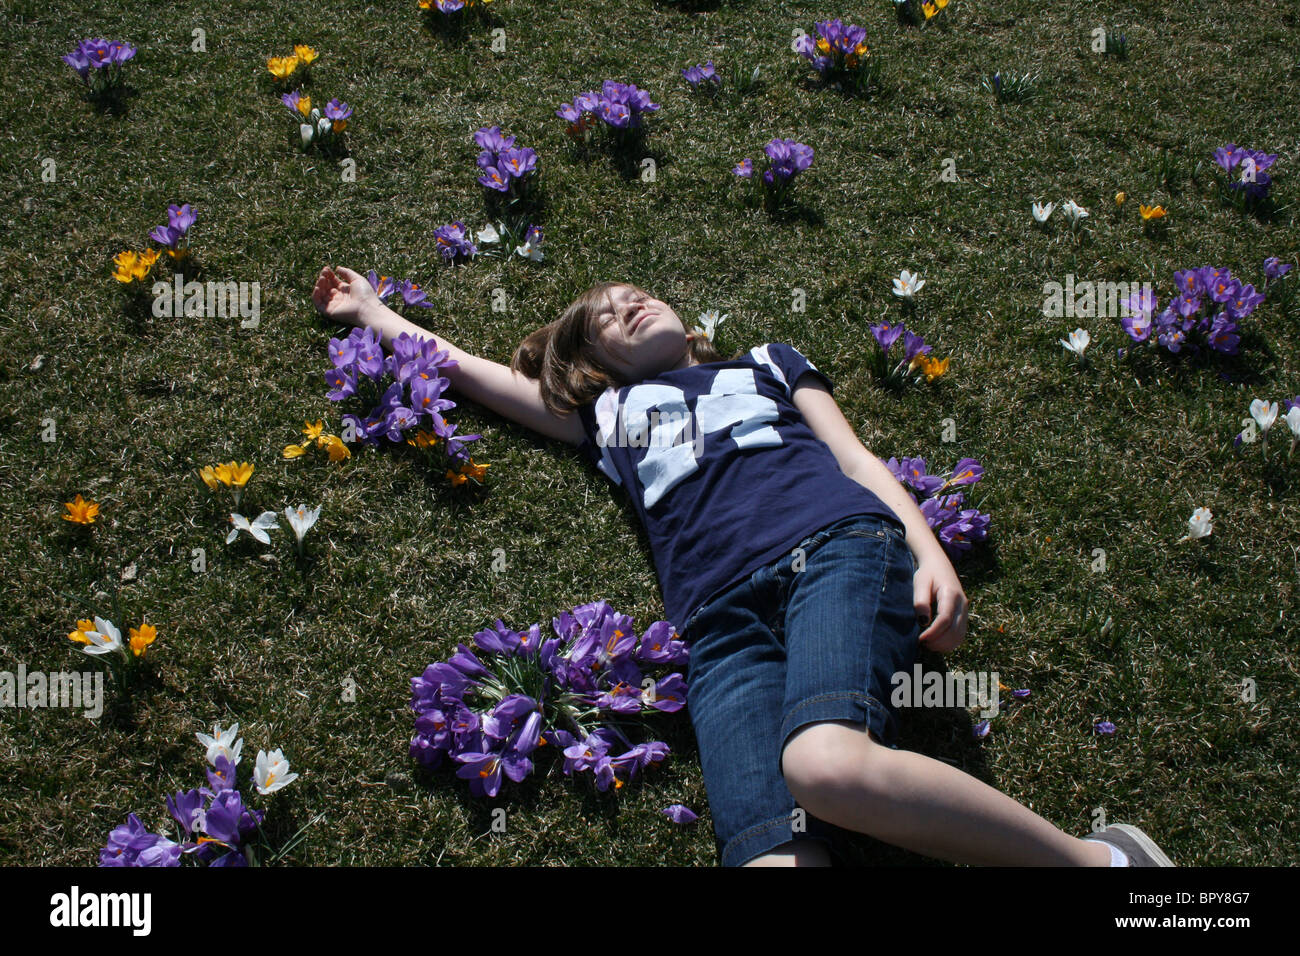 Ahhh youth! A my, a young girl, soaks up the sun with not a care in the world amidst flowers blooming in a meadow. - Stock Image